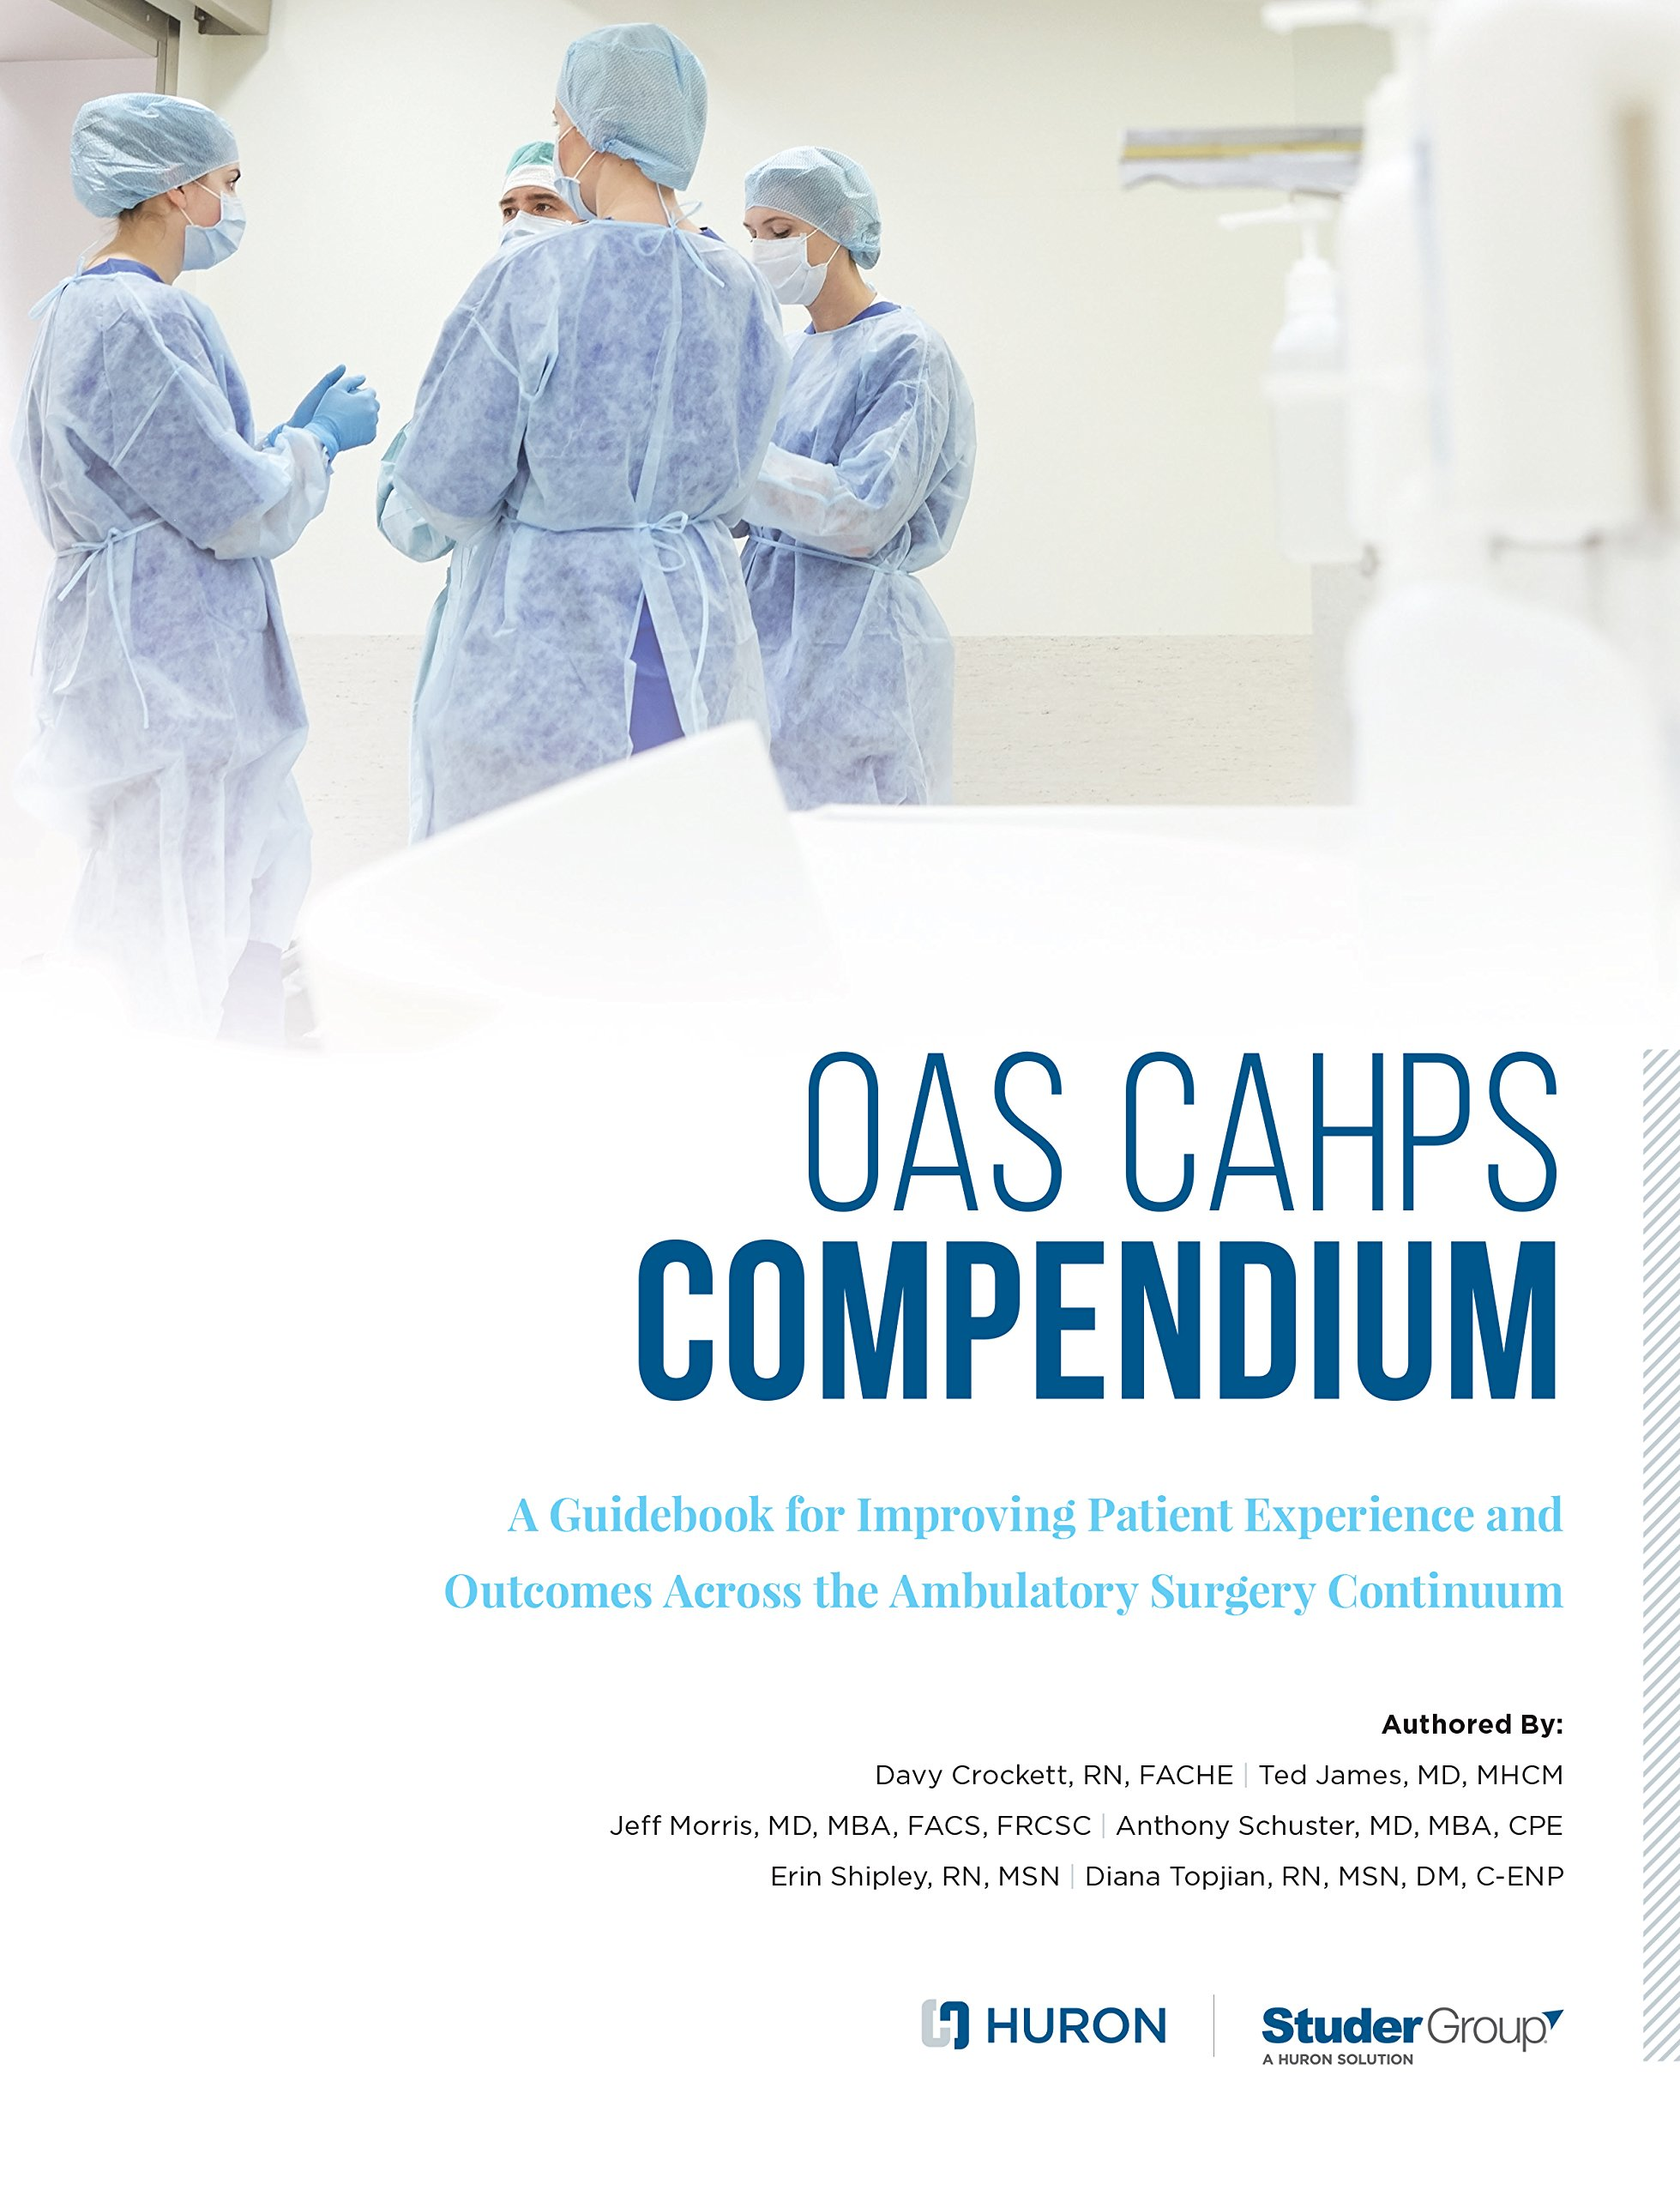 The OAS CAHPS Compendium: A Guidebook for Improving Patient Experience and Outcomes Across the Ambulatory Surgery Continuum pdf epub